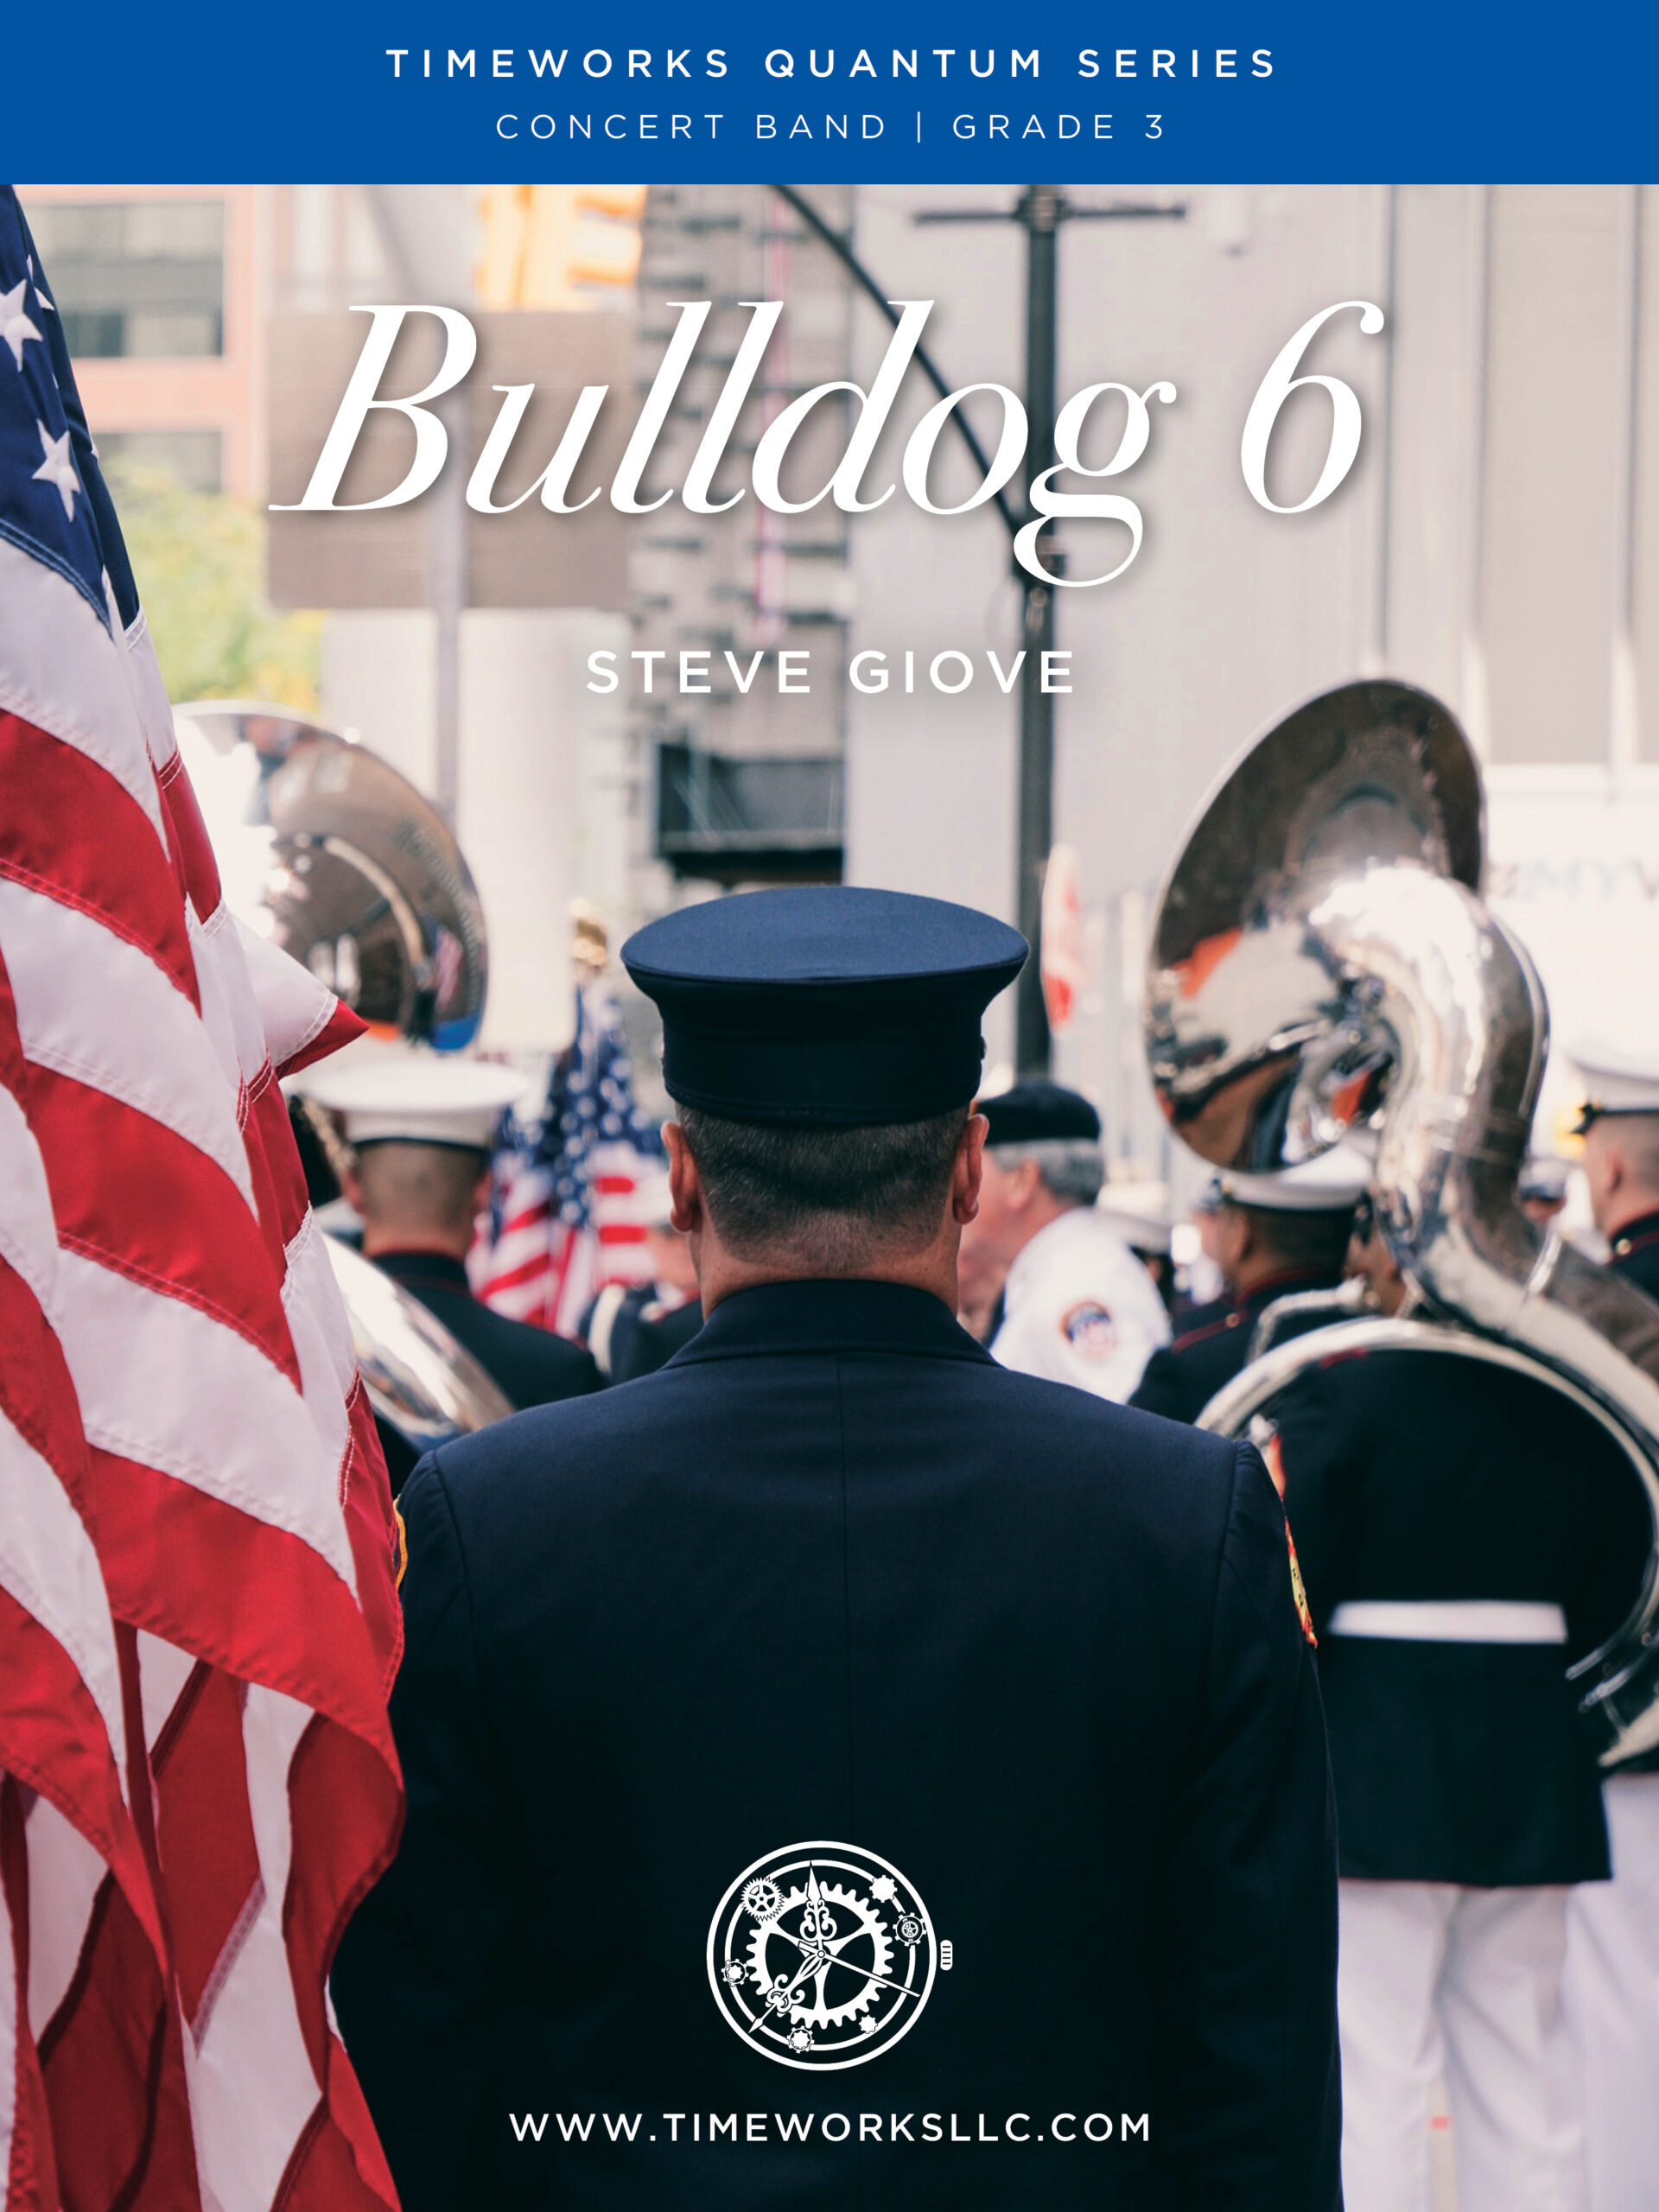 Bulldog 6 Cover Image